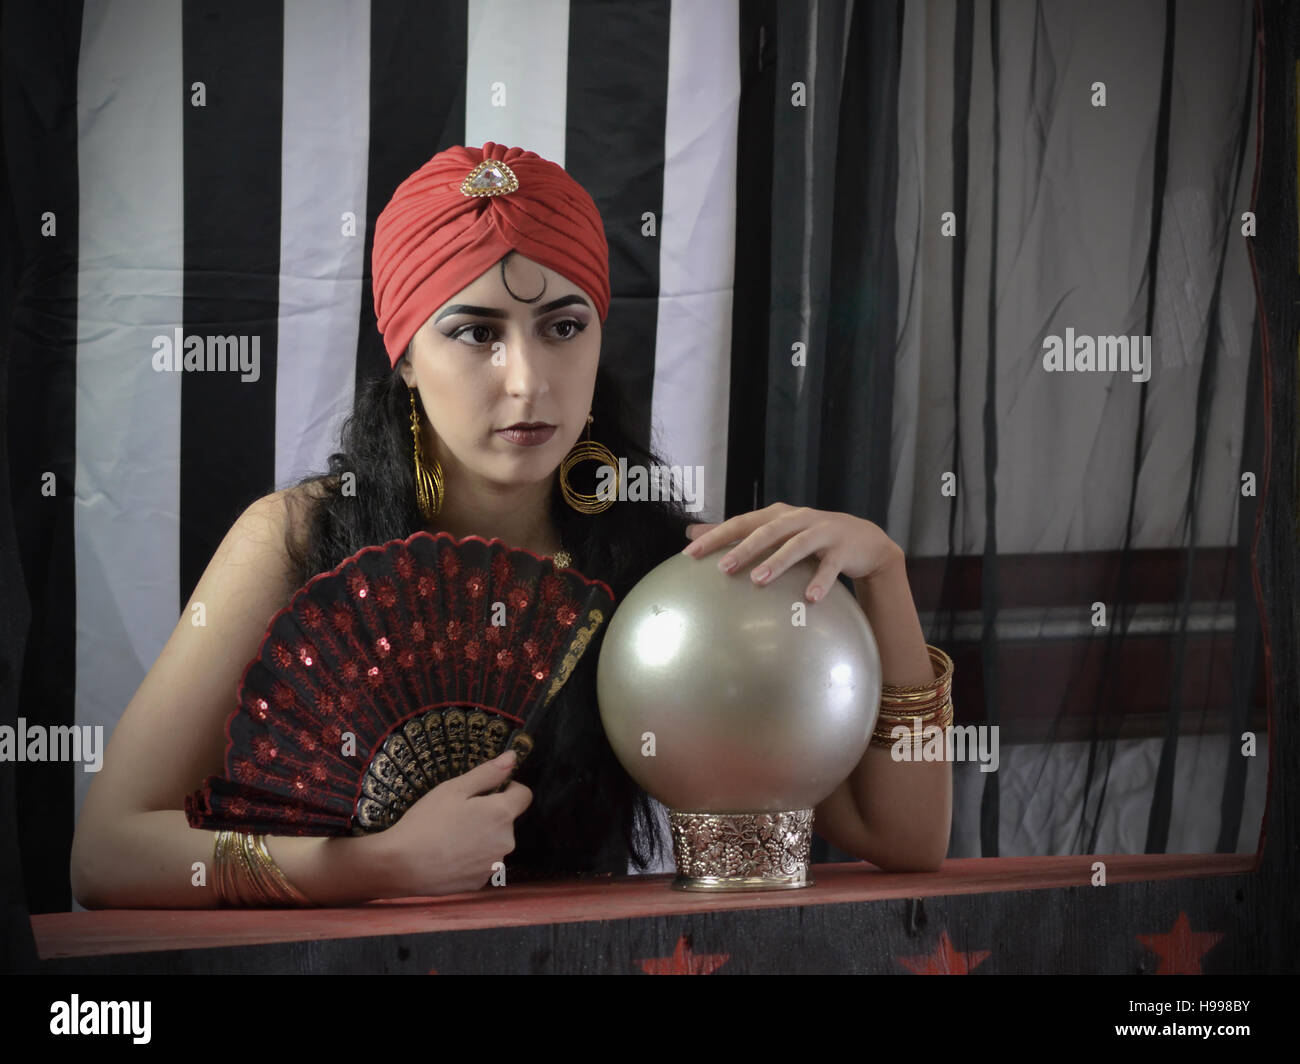 Performer with  crystal ball and fan ready to read the future in circus setting - Stock Image